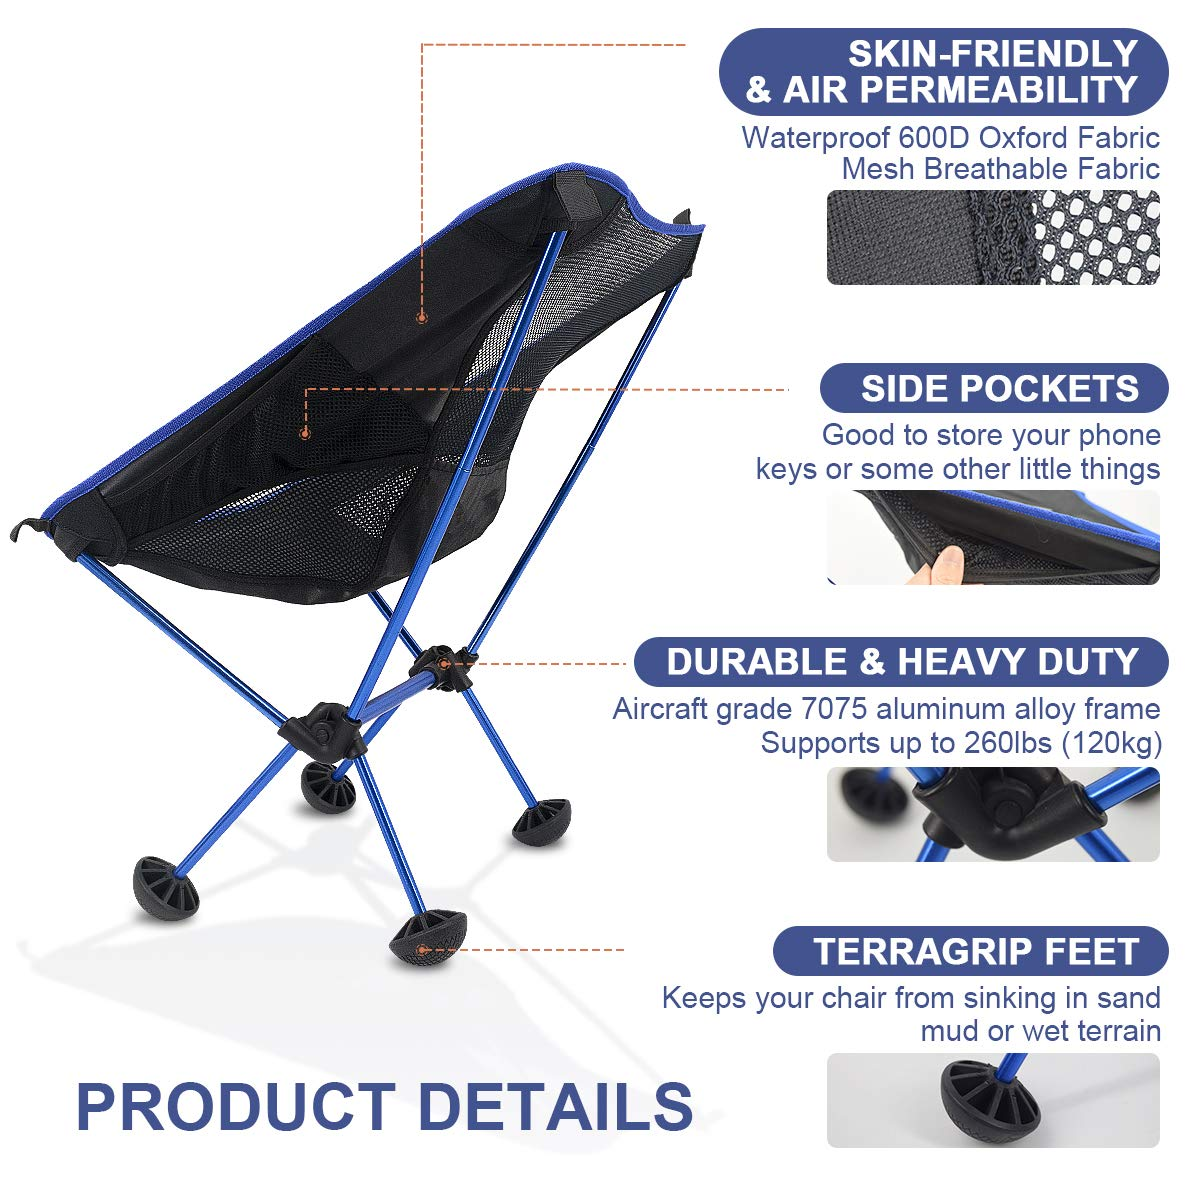 FRUITEAM Camping Chairs Folding Hiking Picnic Portable Camp Chair with Carry Bag for Backpacking Outdoors Sporting